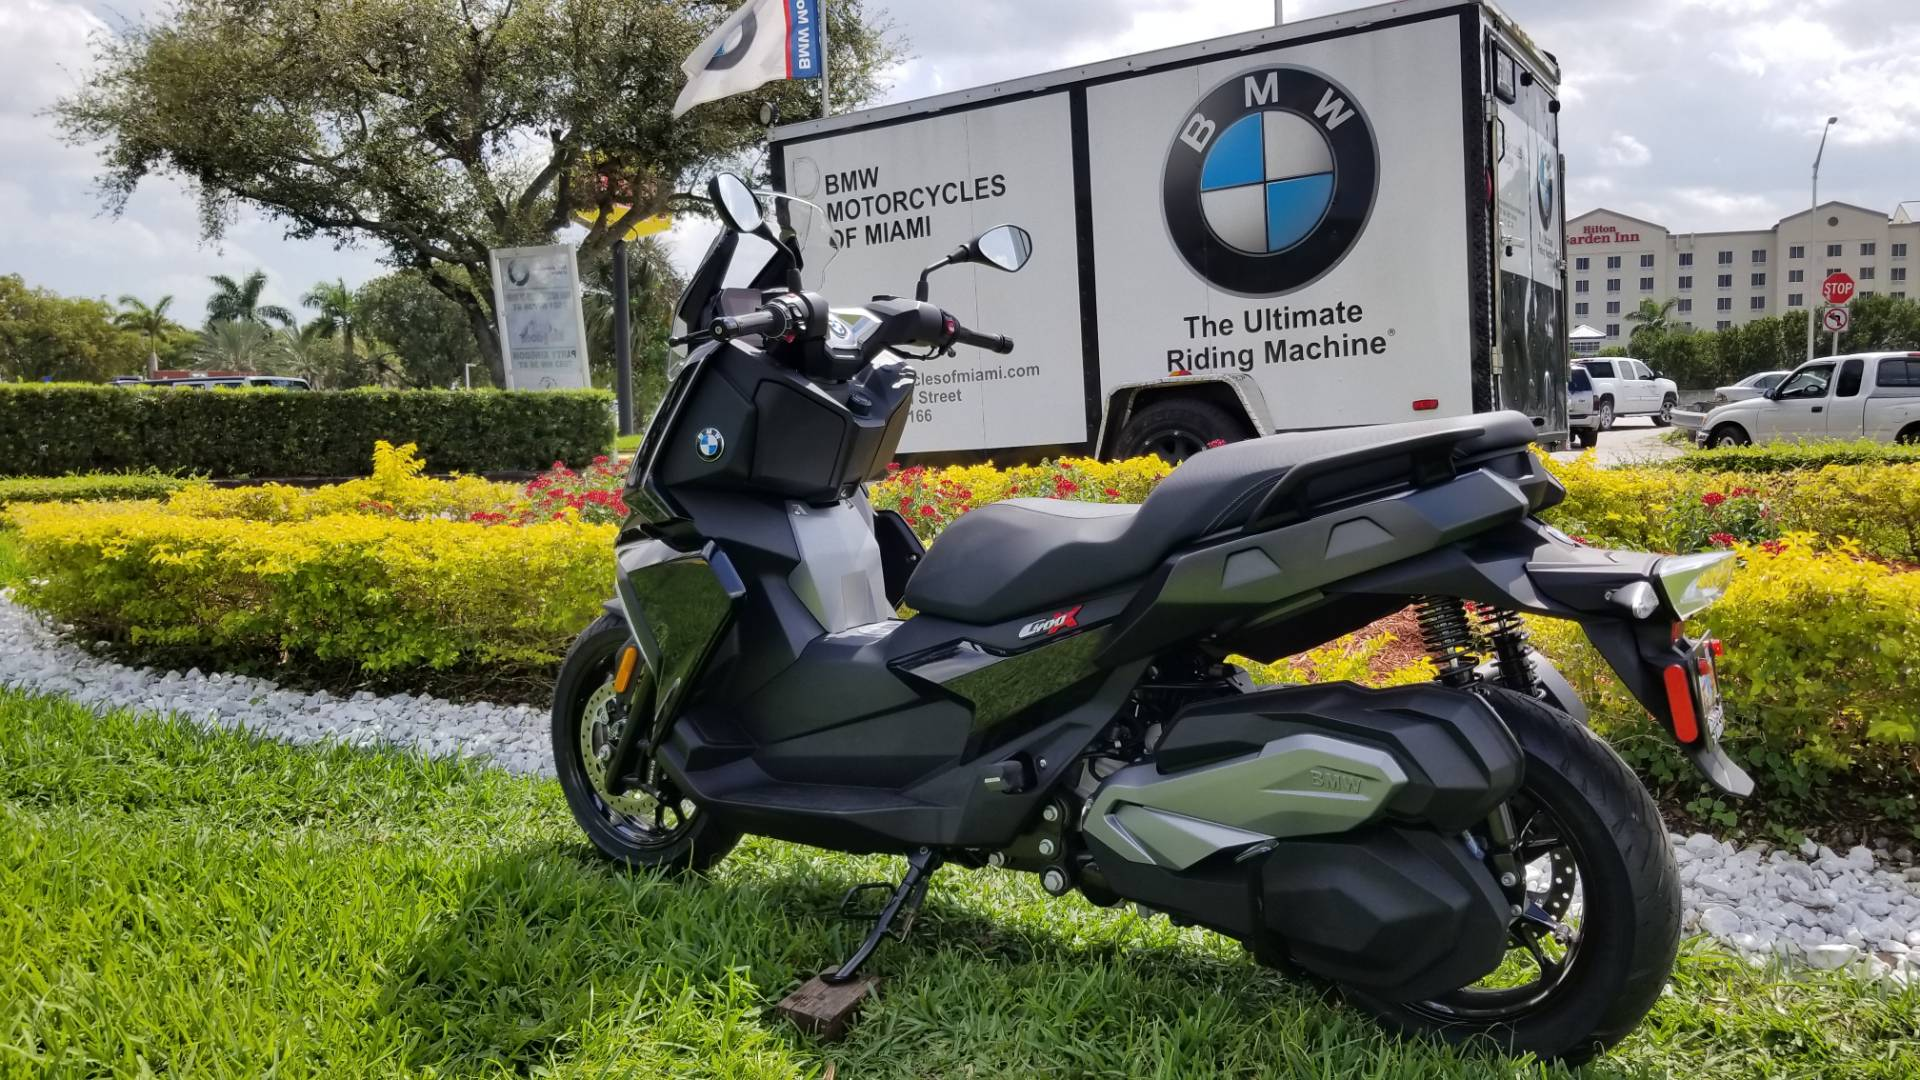 New 2019 BMW C 400 X for sale, BMW C 400X for sale, BMW Scooter, new BMW Scooter, C400X, BMW Motorcycles of Miami, Motorcycles of Miami, Motorcycles Miami, New Motorcycles, Used Motorcycles, pre-owned. #BMWMotorcyclesOfMiami #MotorcyclesOfMiami #MotorcyclesMiami - Photo 8